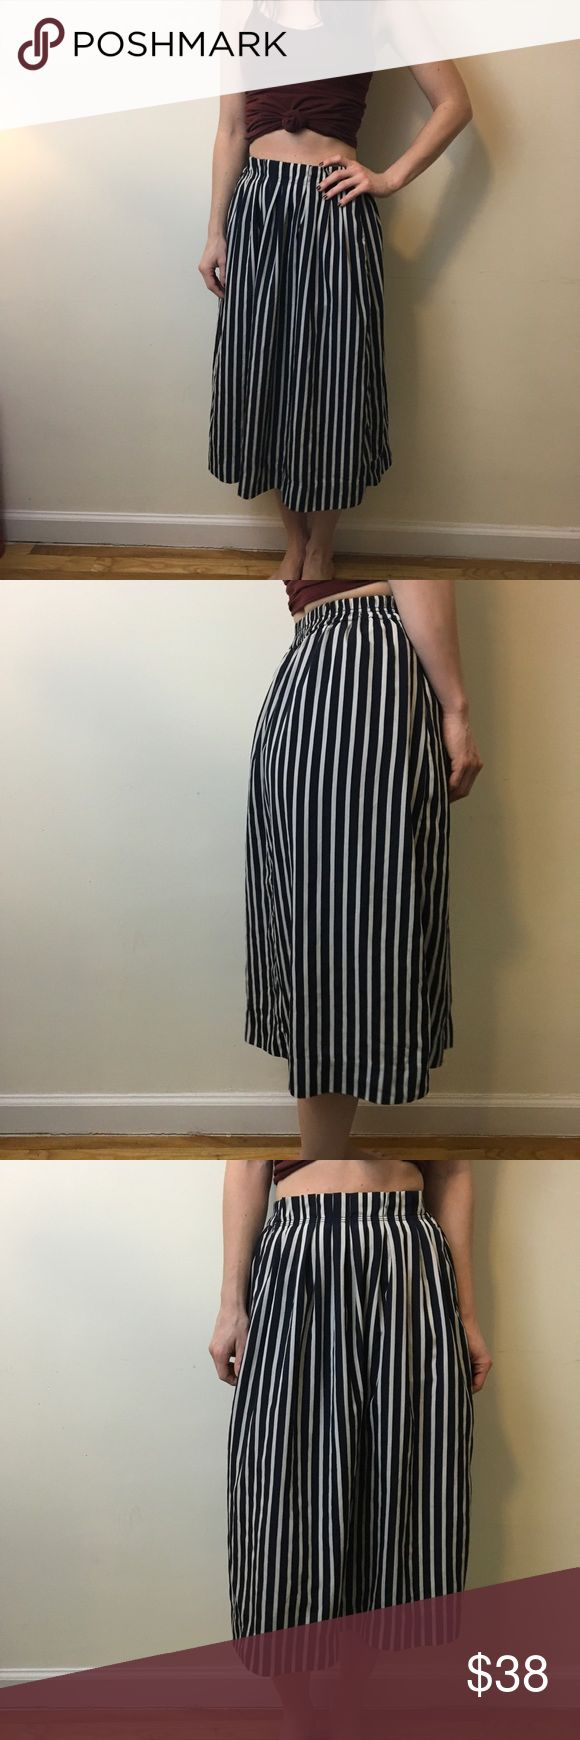 J. Crew Navy & Cream Striped Midi Skirt J. Crew Midi Skirt with a striped body and an elastic waist. Is lined and is a size 0. Worn only once no flaws! J. Crew Skirts Midi